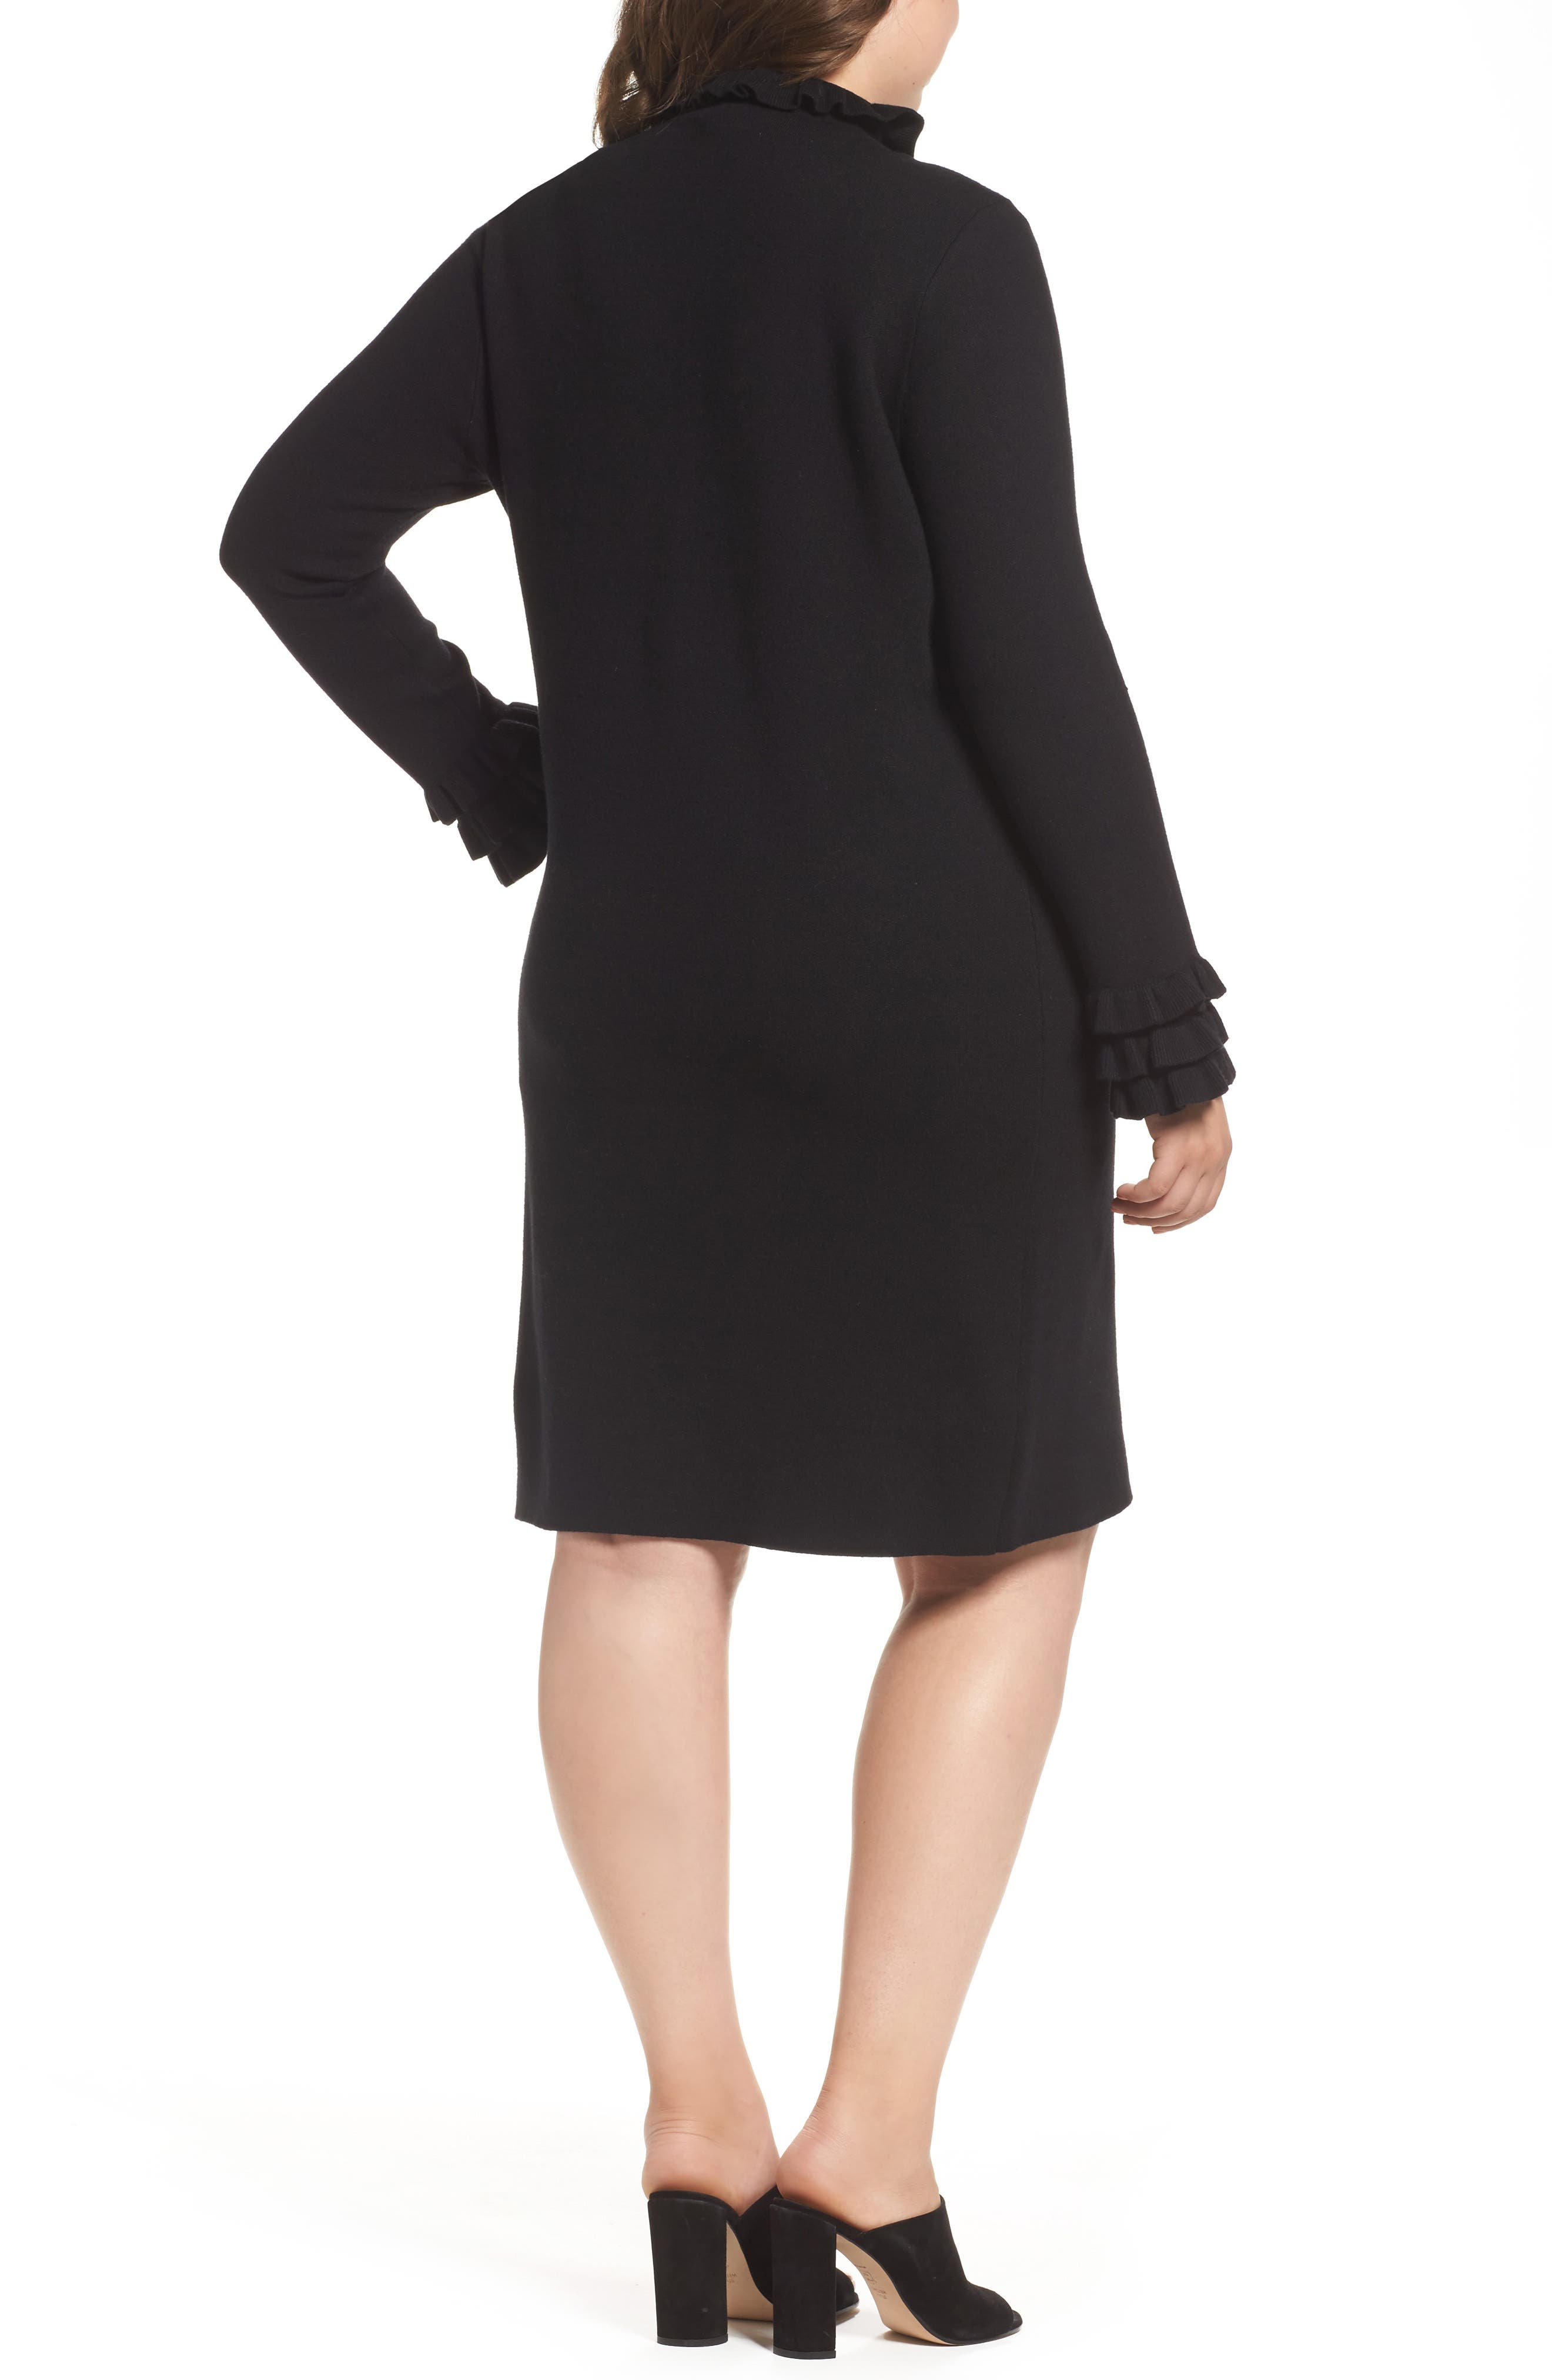 Ruffle Sleeve Sweater Dress,                             Alternate thumbnail 2, color,                             001